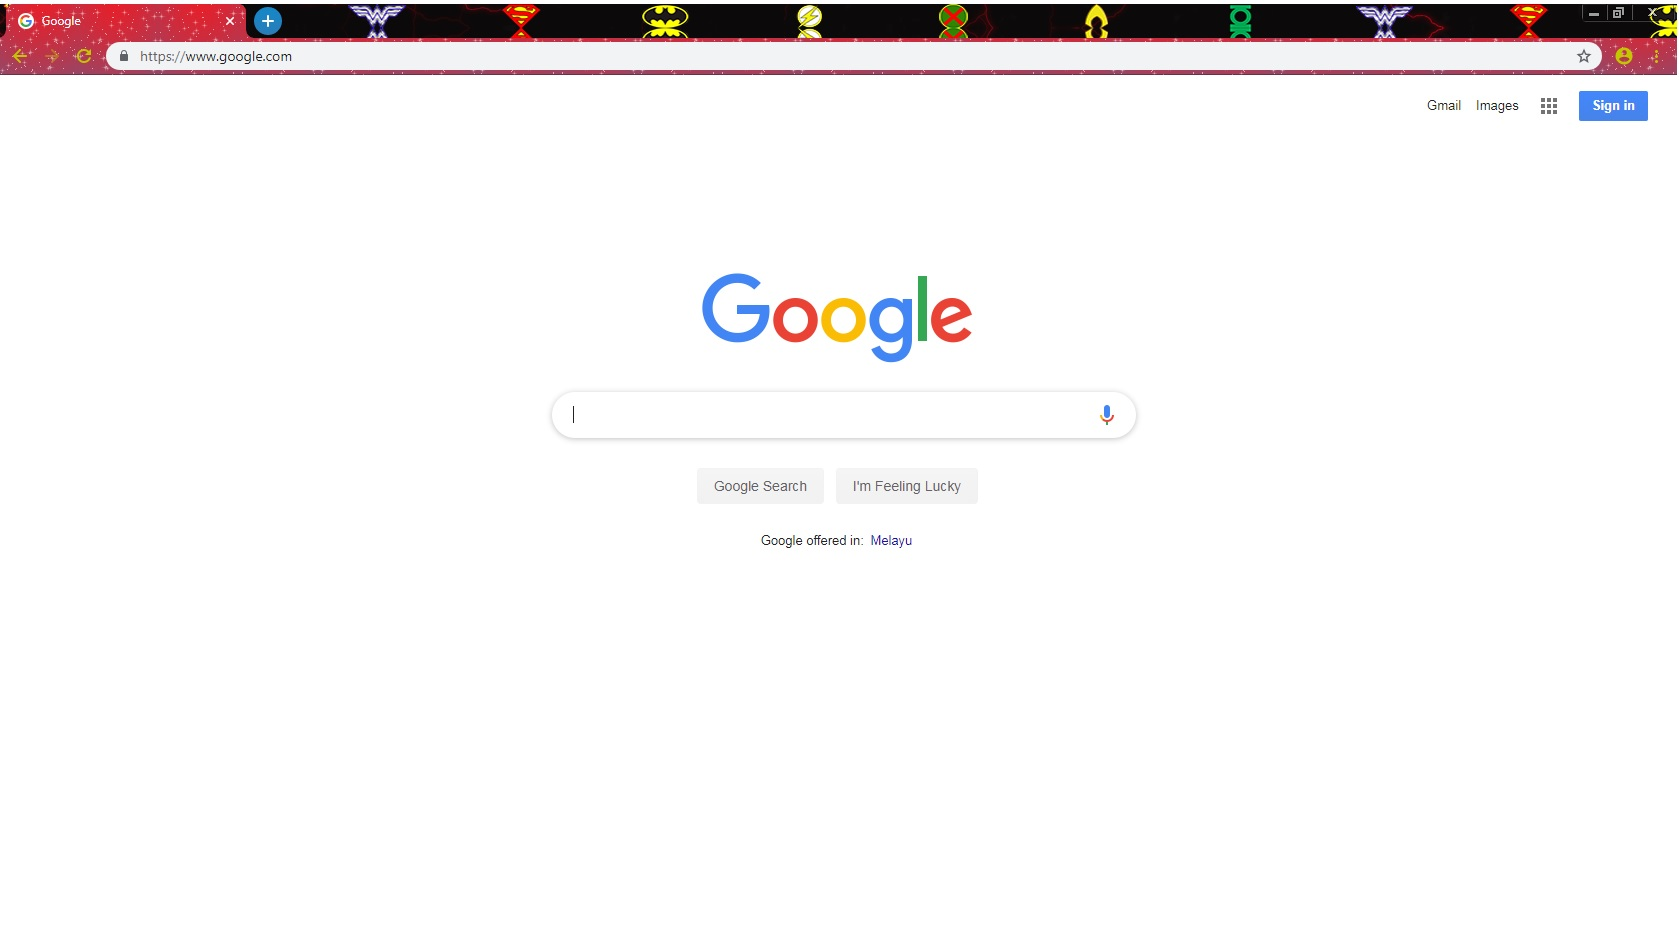 unable to change chrome theme, it only change the top bar